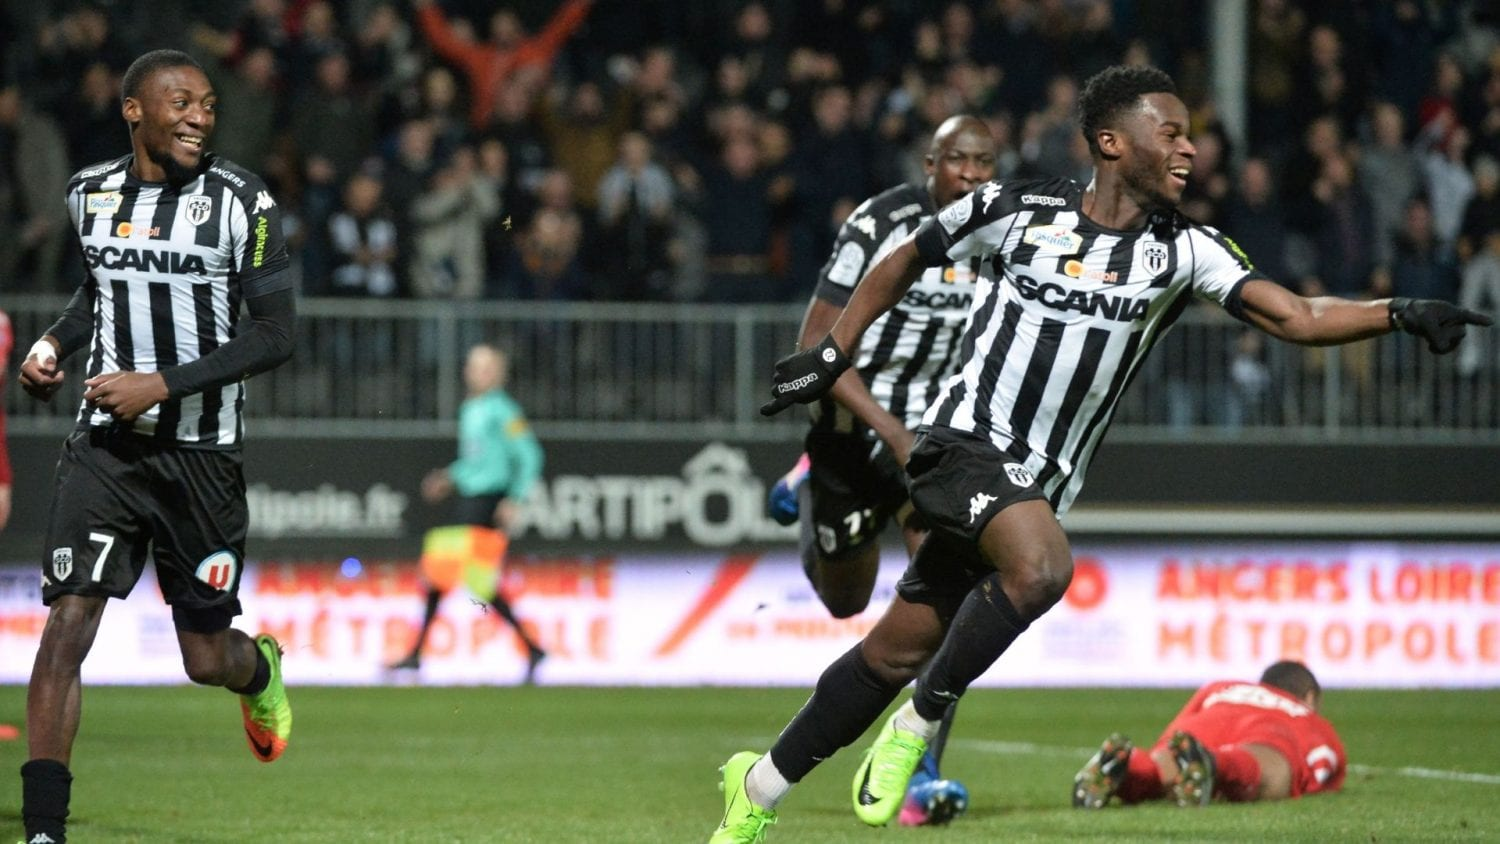 Angers Sco vs Lille Free Betting Tips